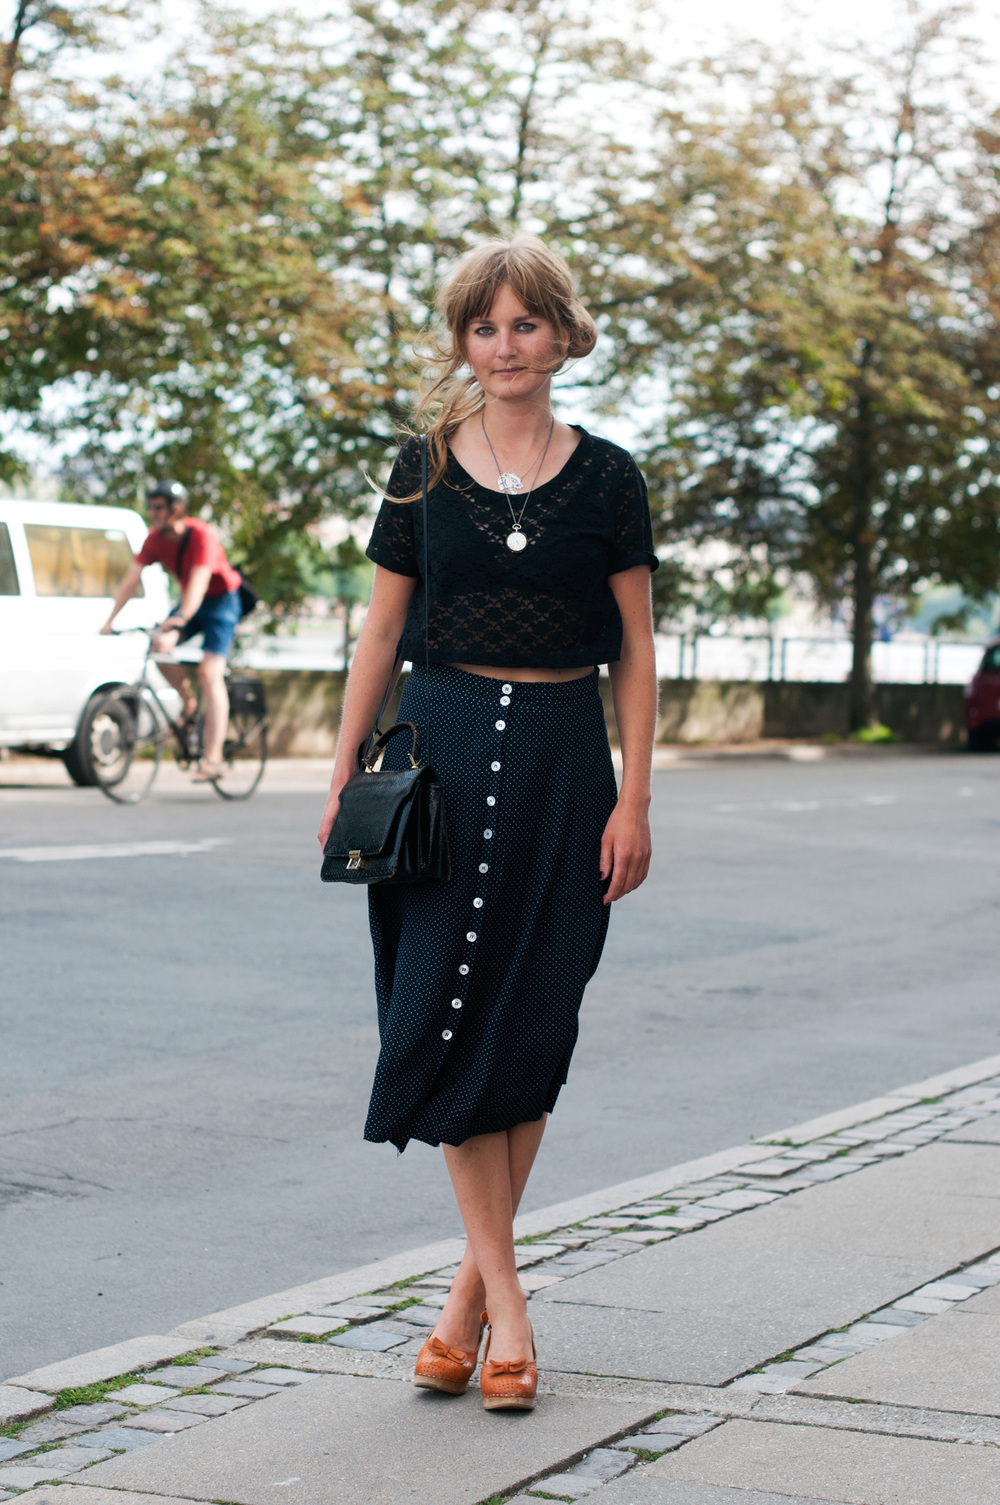 Scandinavian Classic The Locals Street Style From Copenhagen And Elsewhere